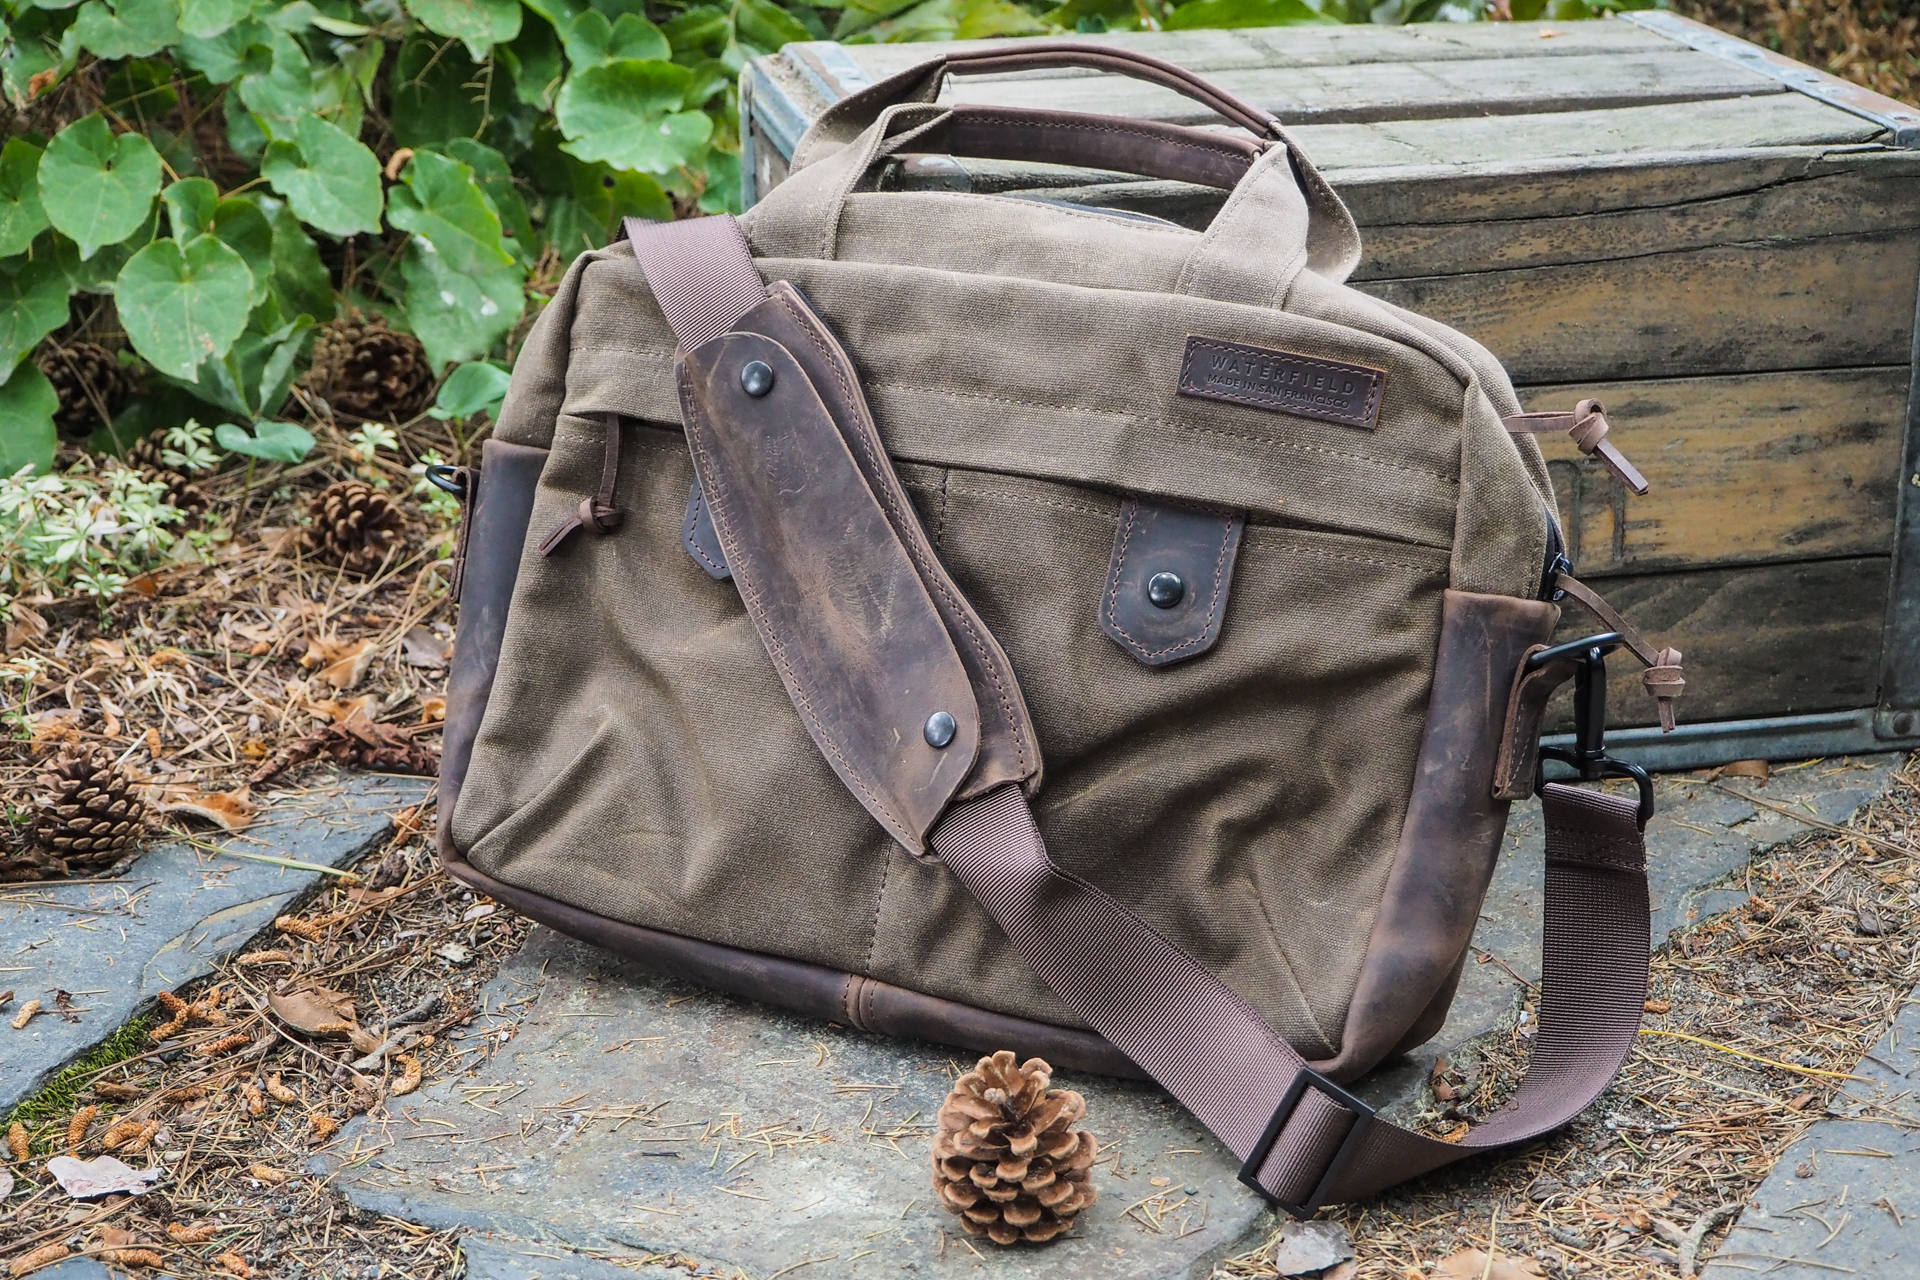 Waxed canvas bags from Waterfield, Manhattan Portage, Saddleback and more – TechCrunch 1